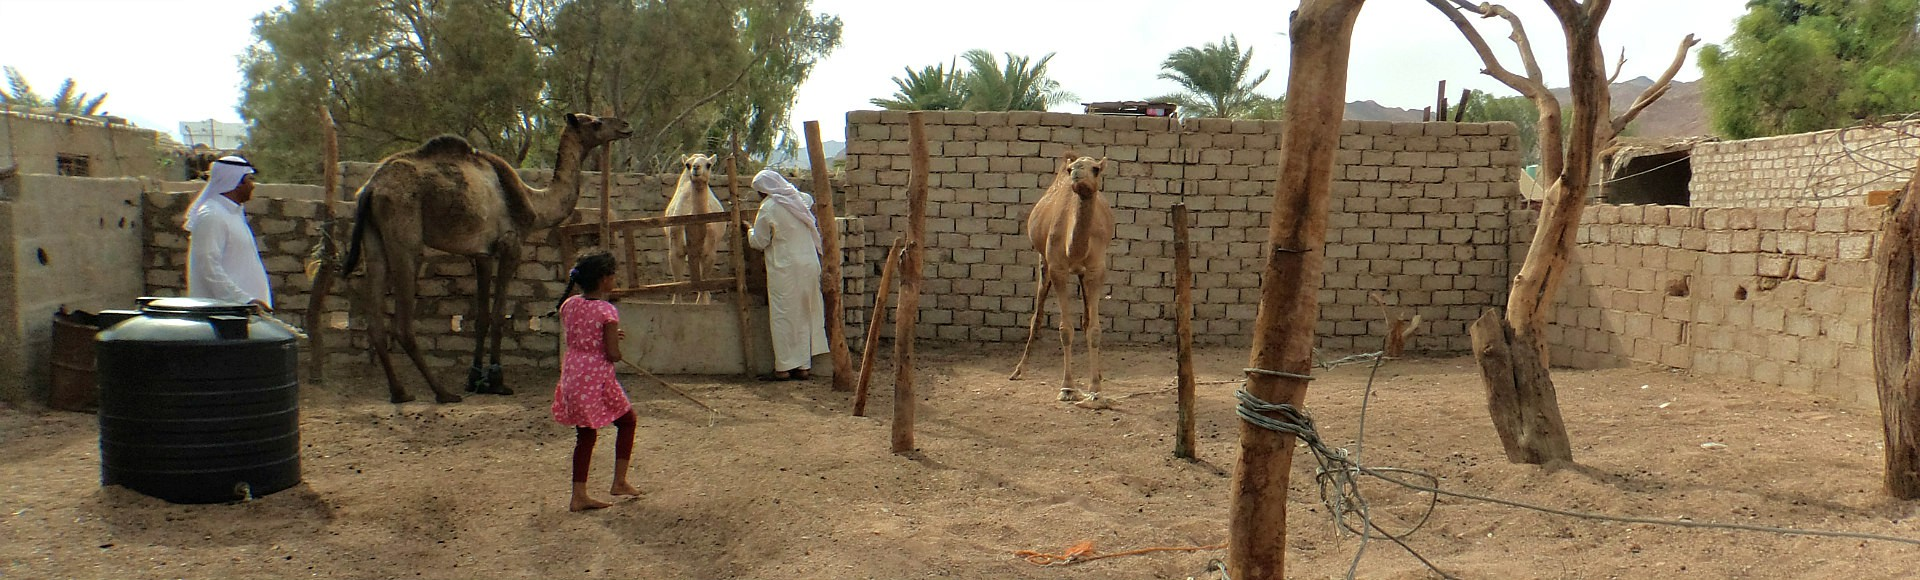 basics4camels dalel foundation